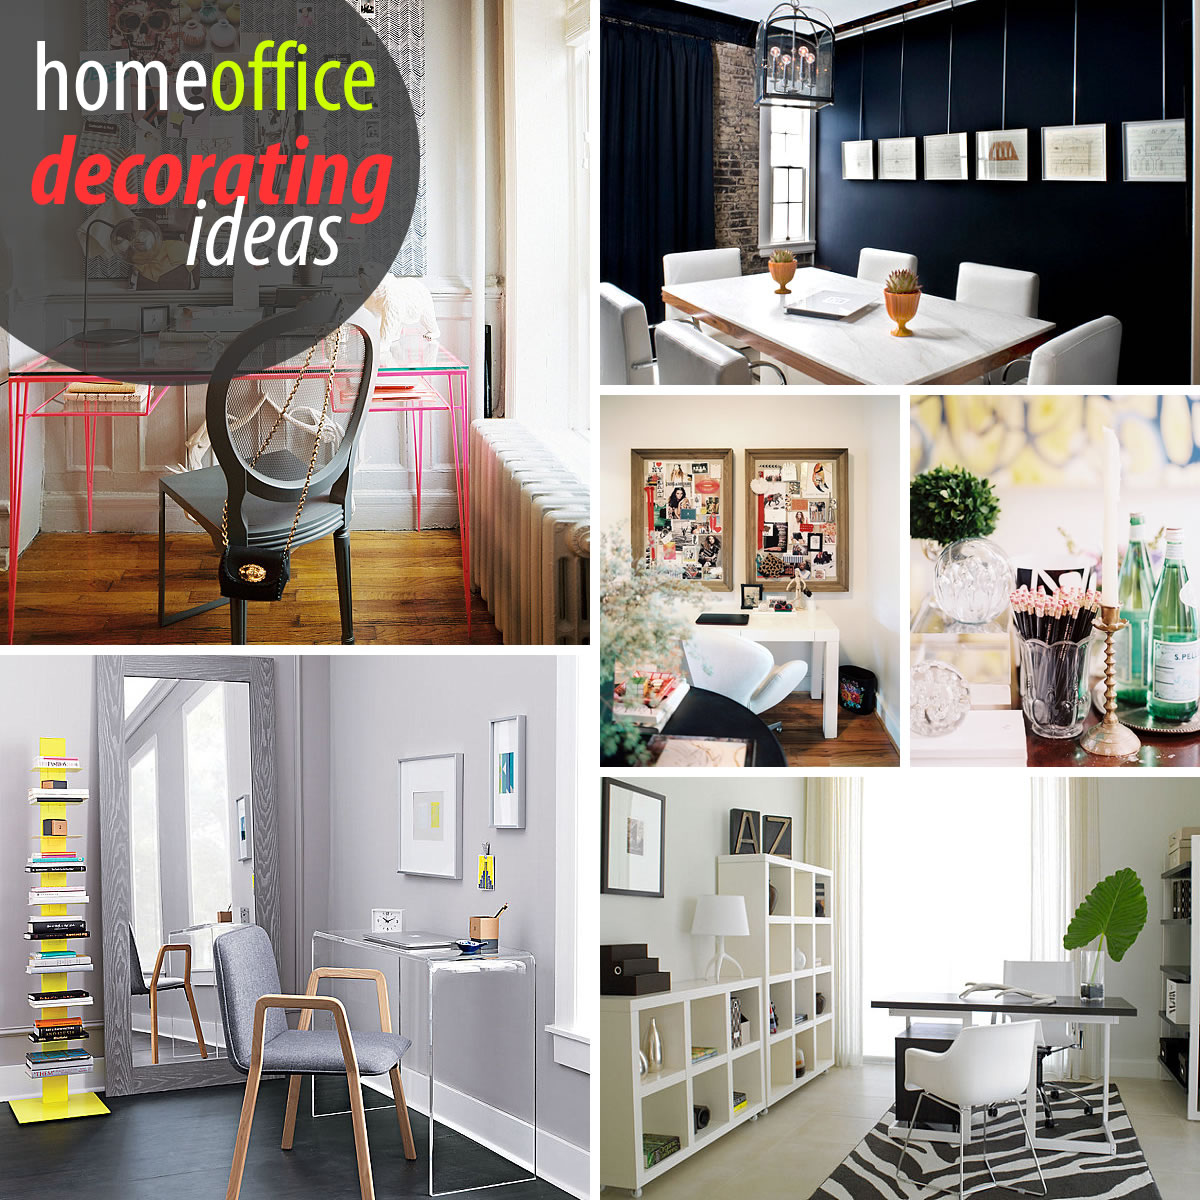 Creative home office decorating ideas for Office decorating ideas pictures